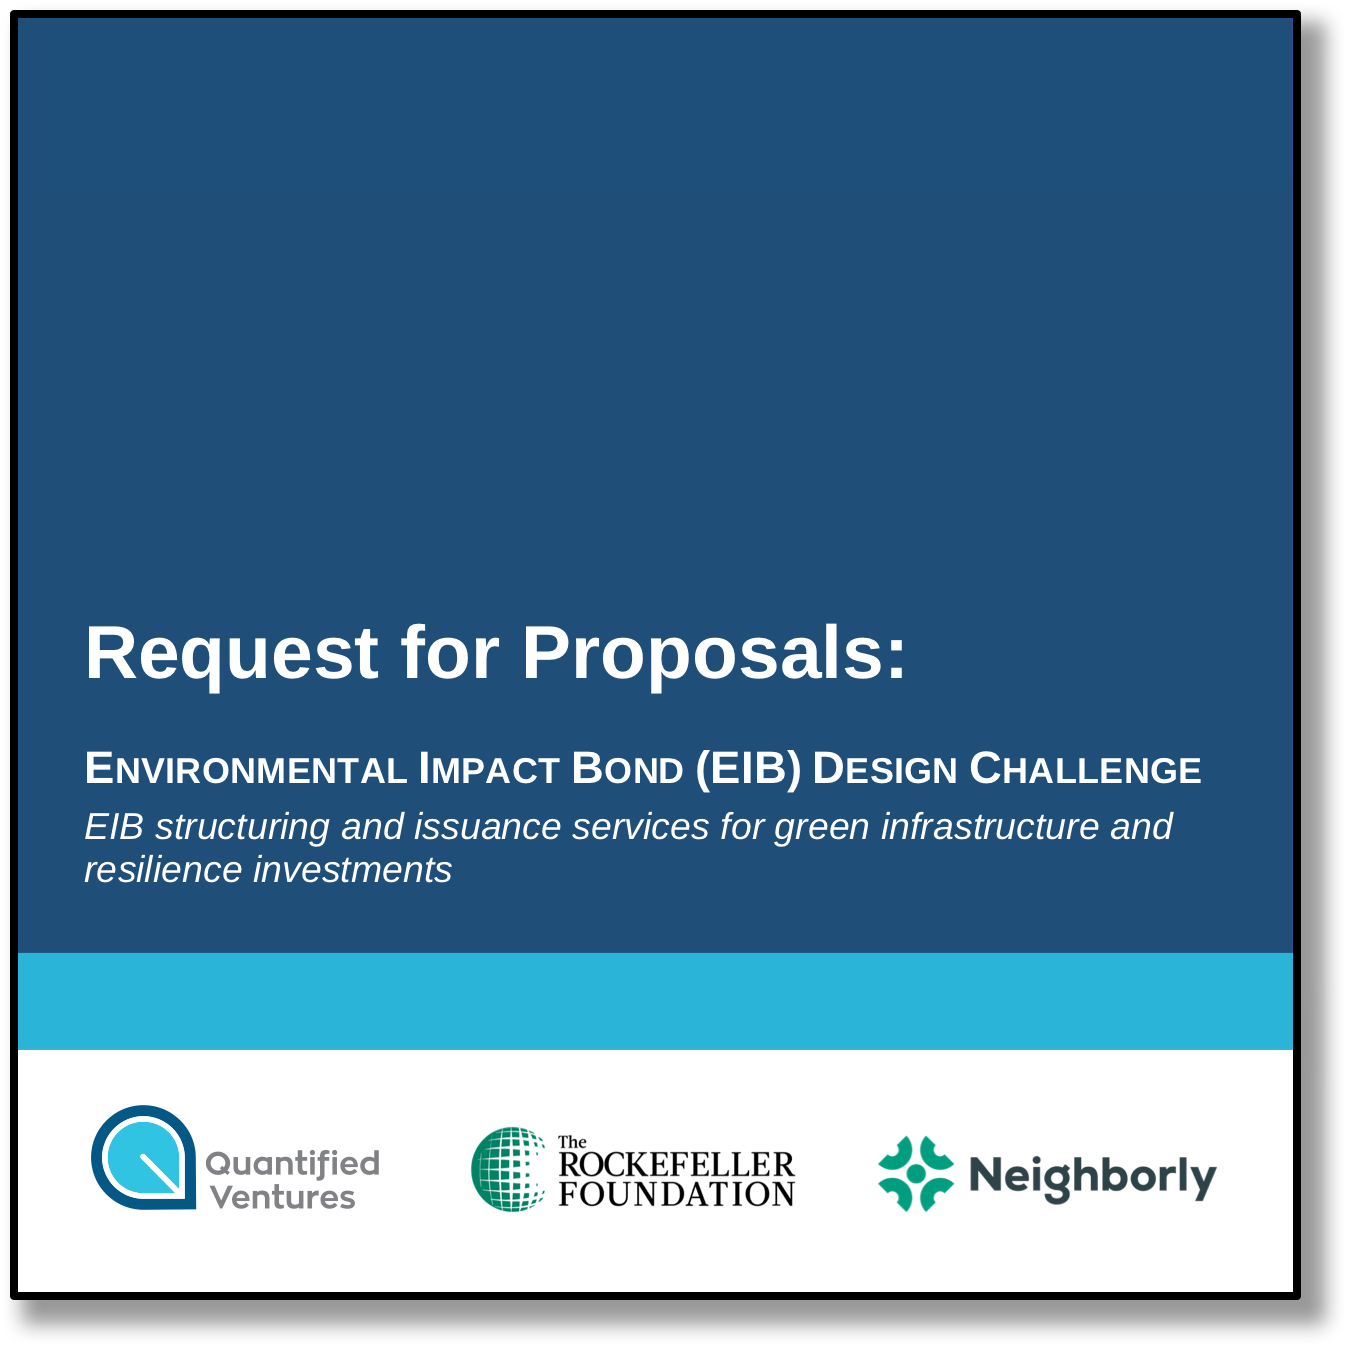 Full Request for Proposals